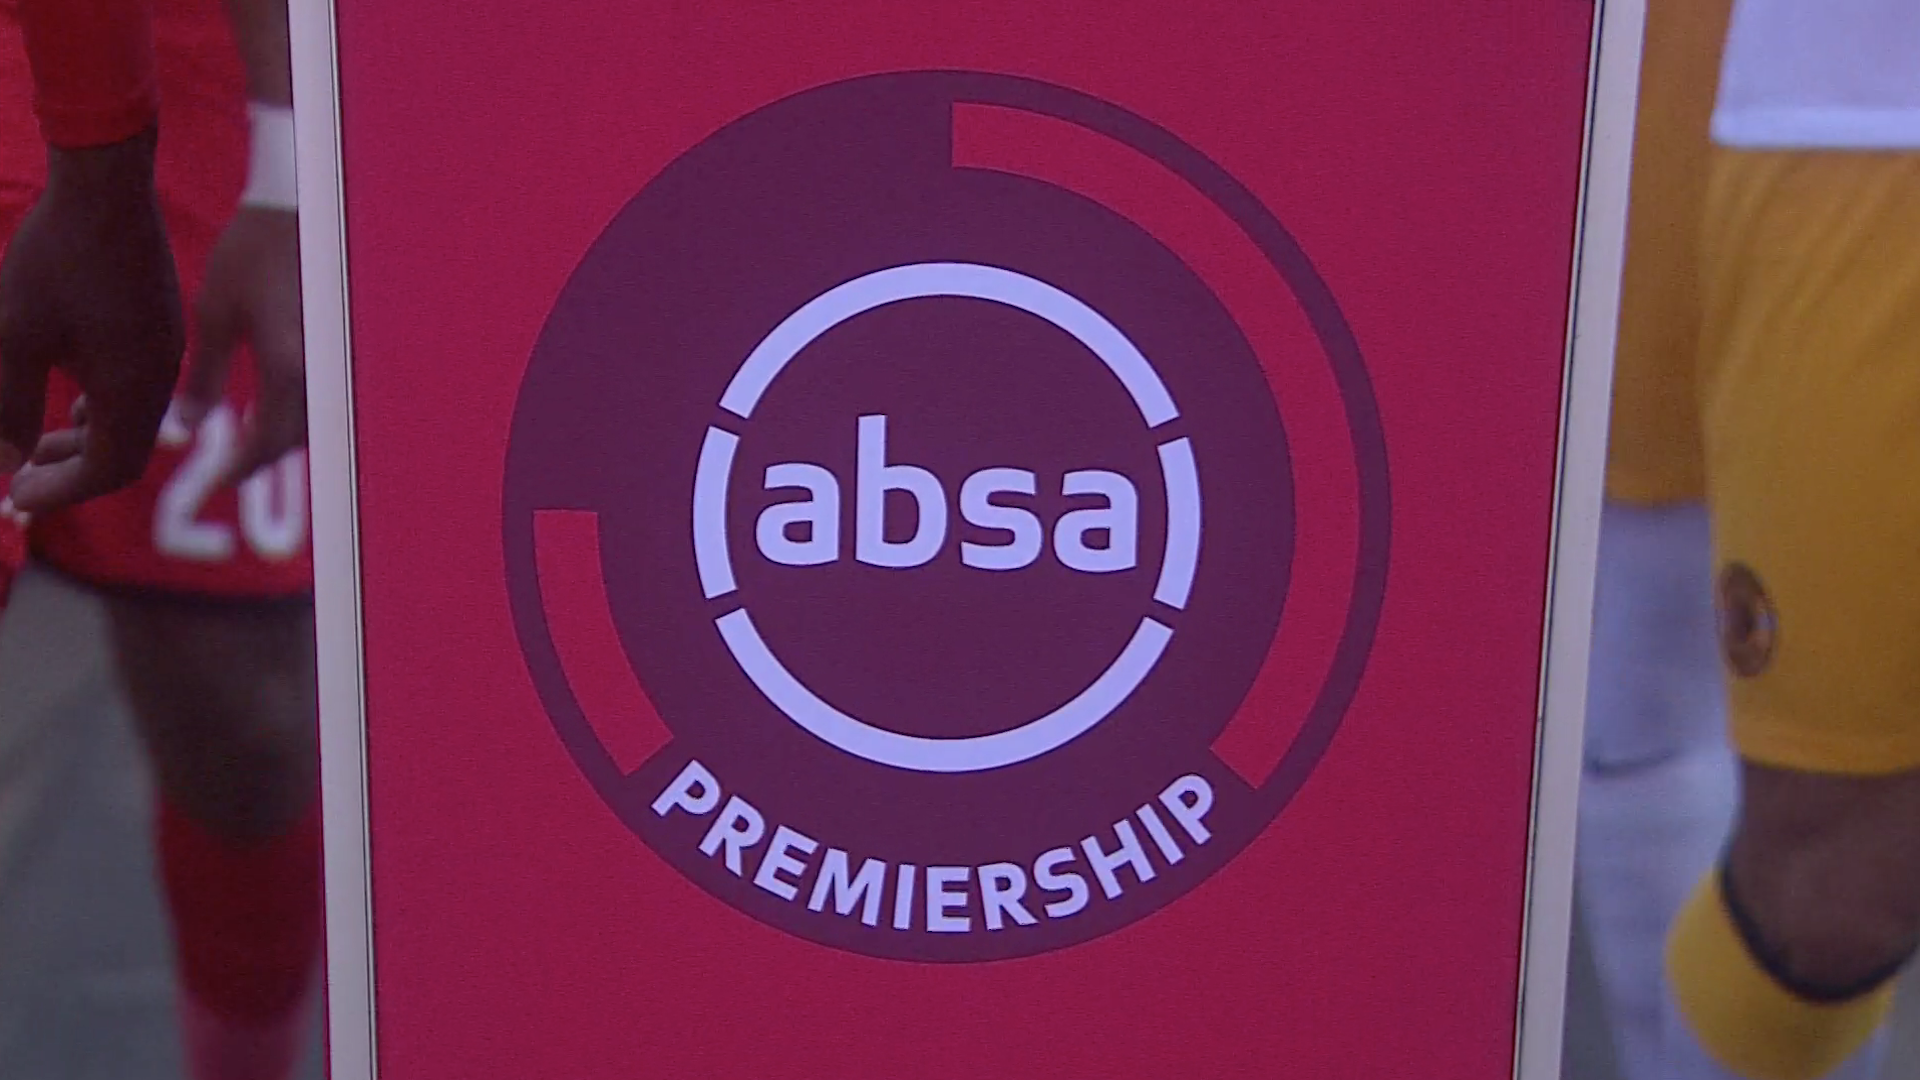 Absa Premiership | AmaZulu FC v Kaizer Chiefs | Preview